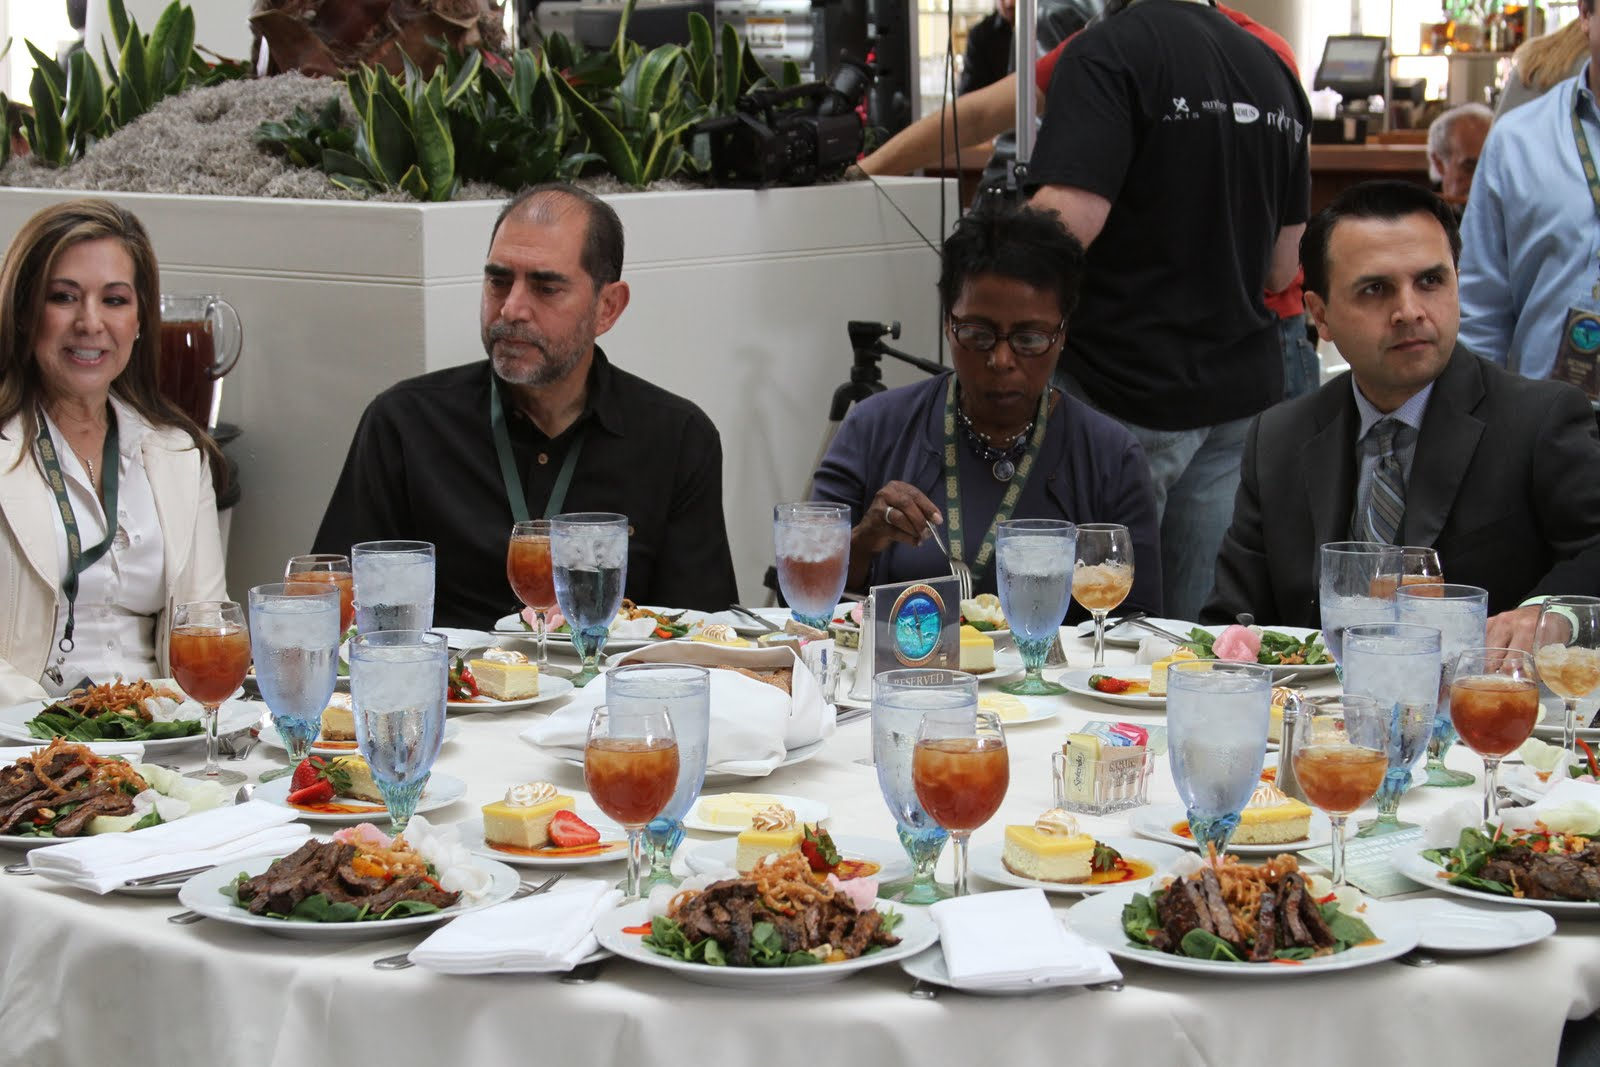 Loews santa monica hotel multi cultural cooking network Simple table setting for lunch